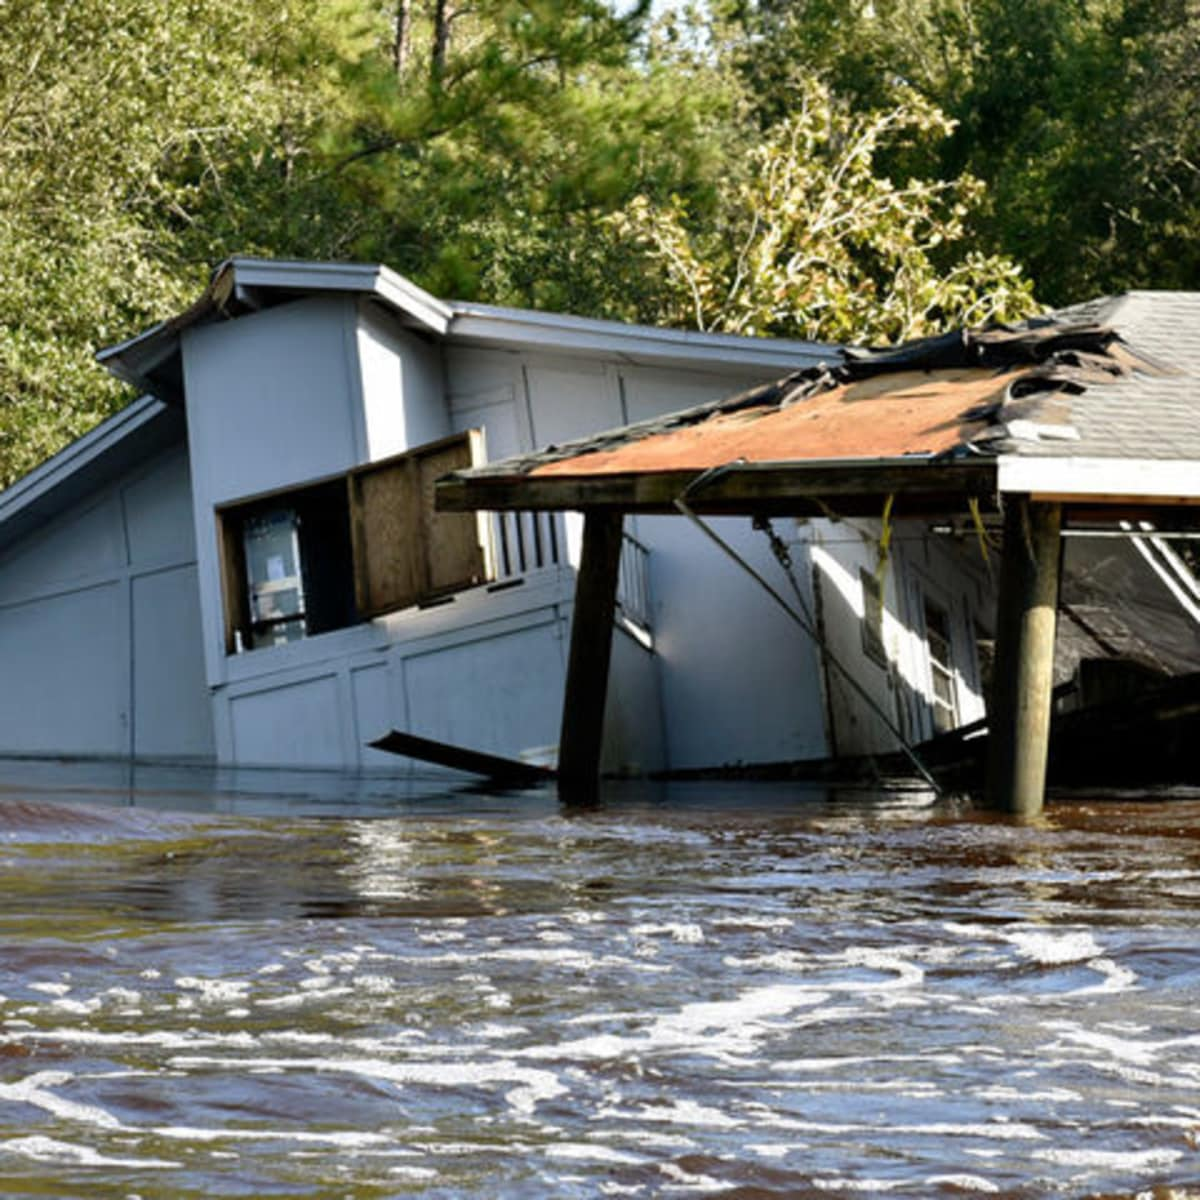 Flooding in Clay County, Florida, from Hurricane Irma, Houzz